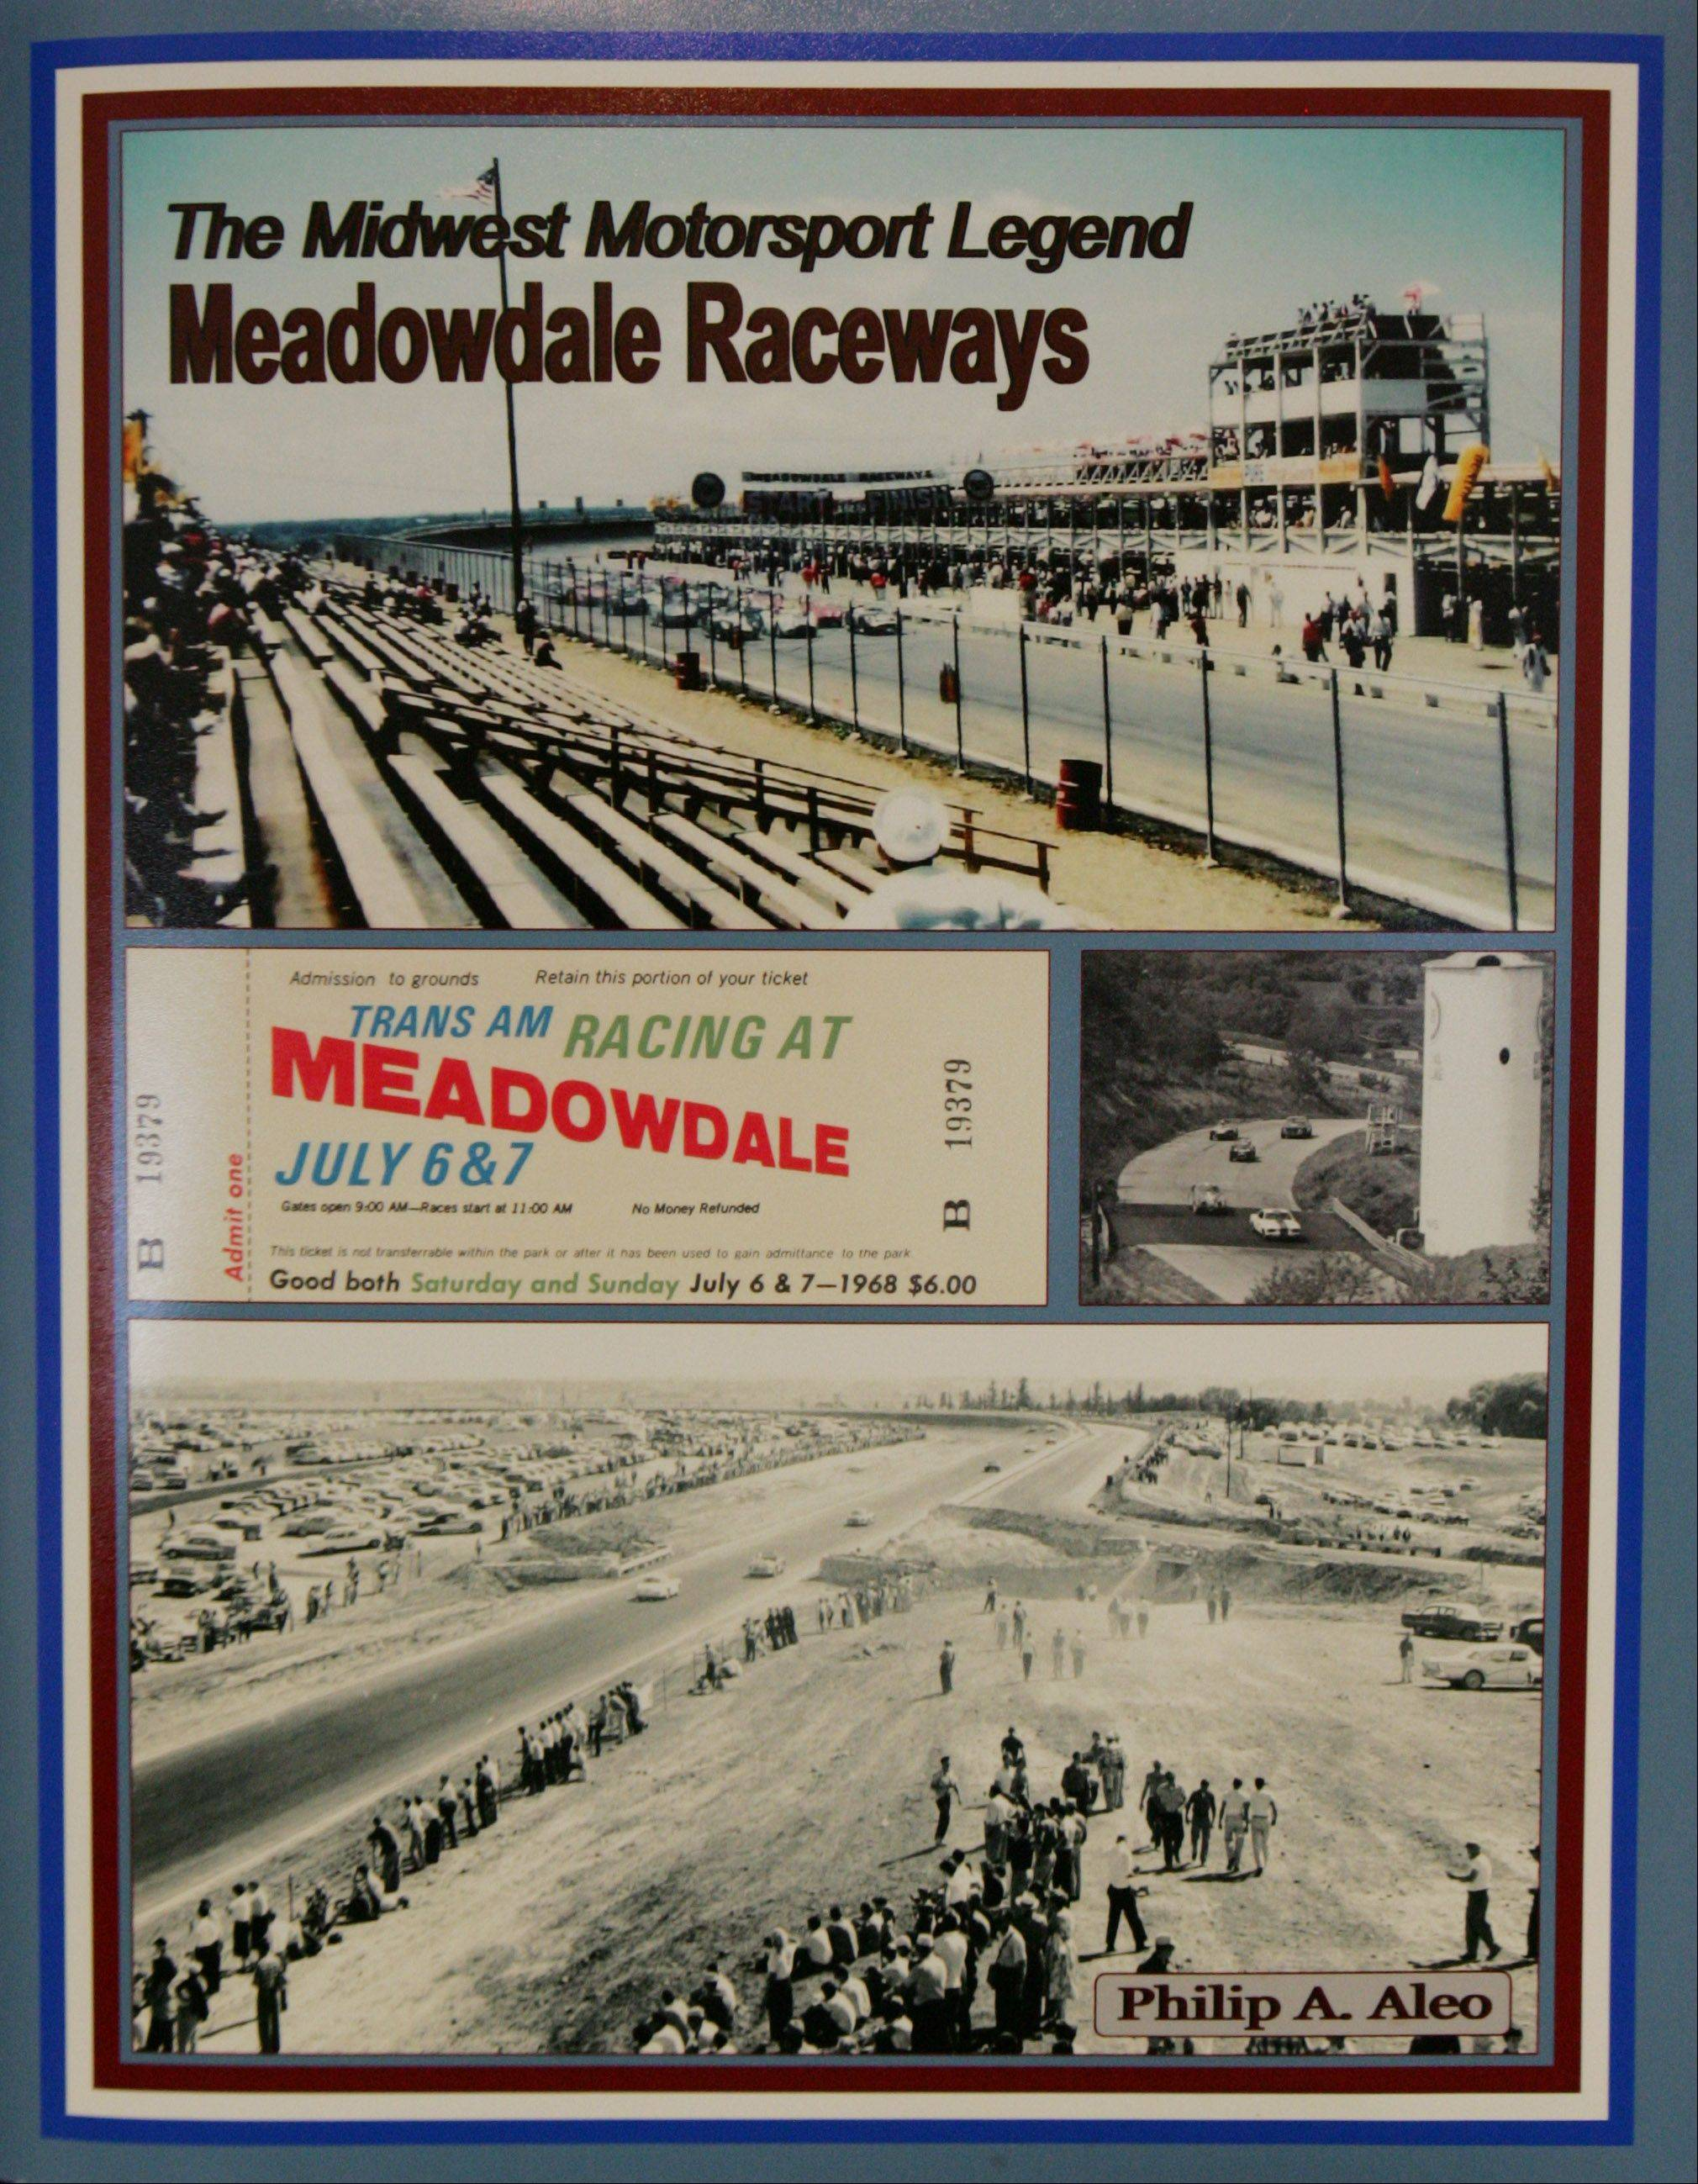 Sleepy Hollow resident Phil Aleo has written a book about the history of the Meadowdale International Raceways near Carpentersville. The hardcover book of 205 pages is the culmination of 300 photographs and 25 interviews done over five years.